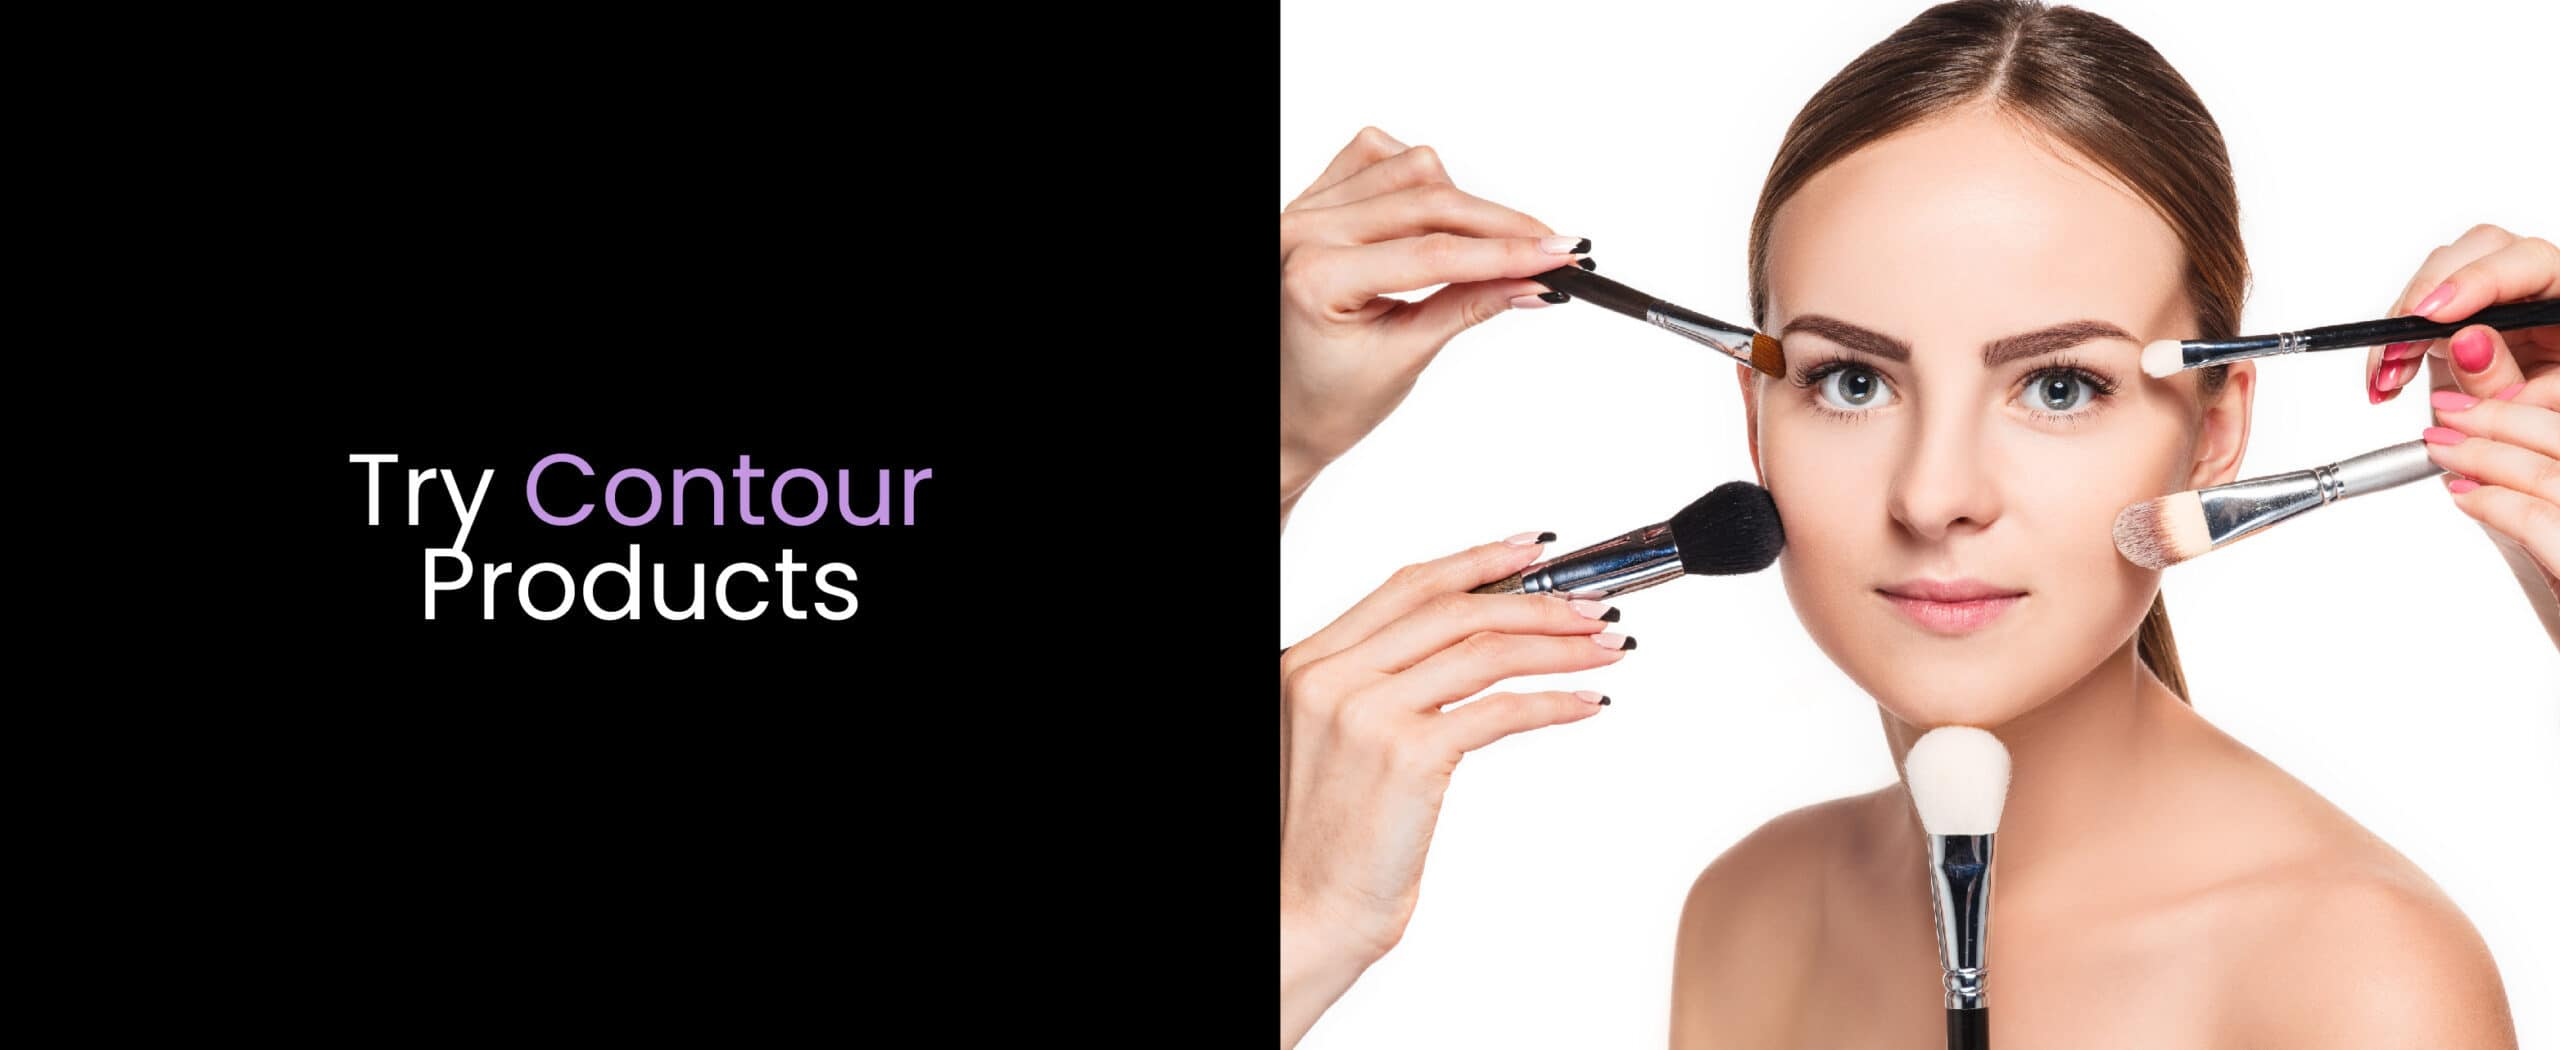 3. Try Contour Products